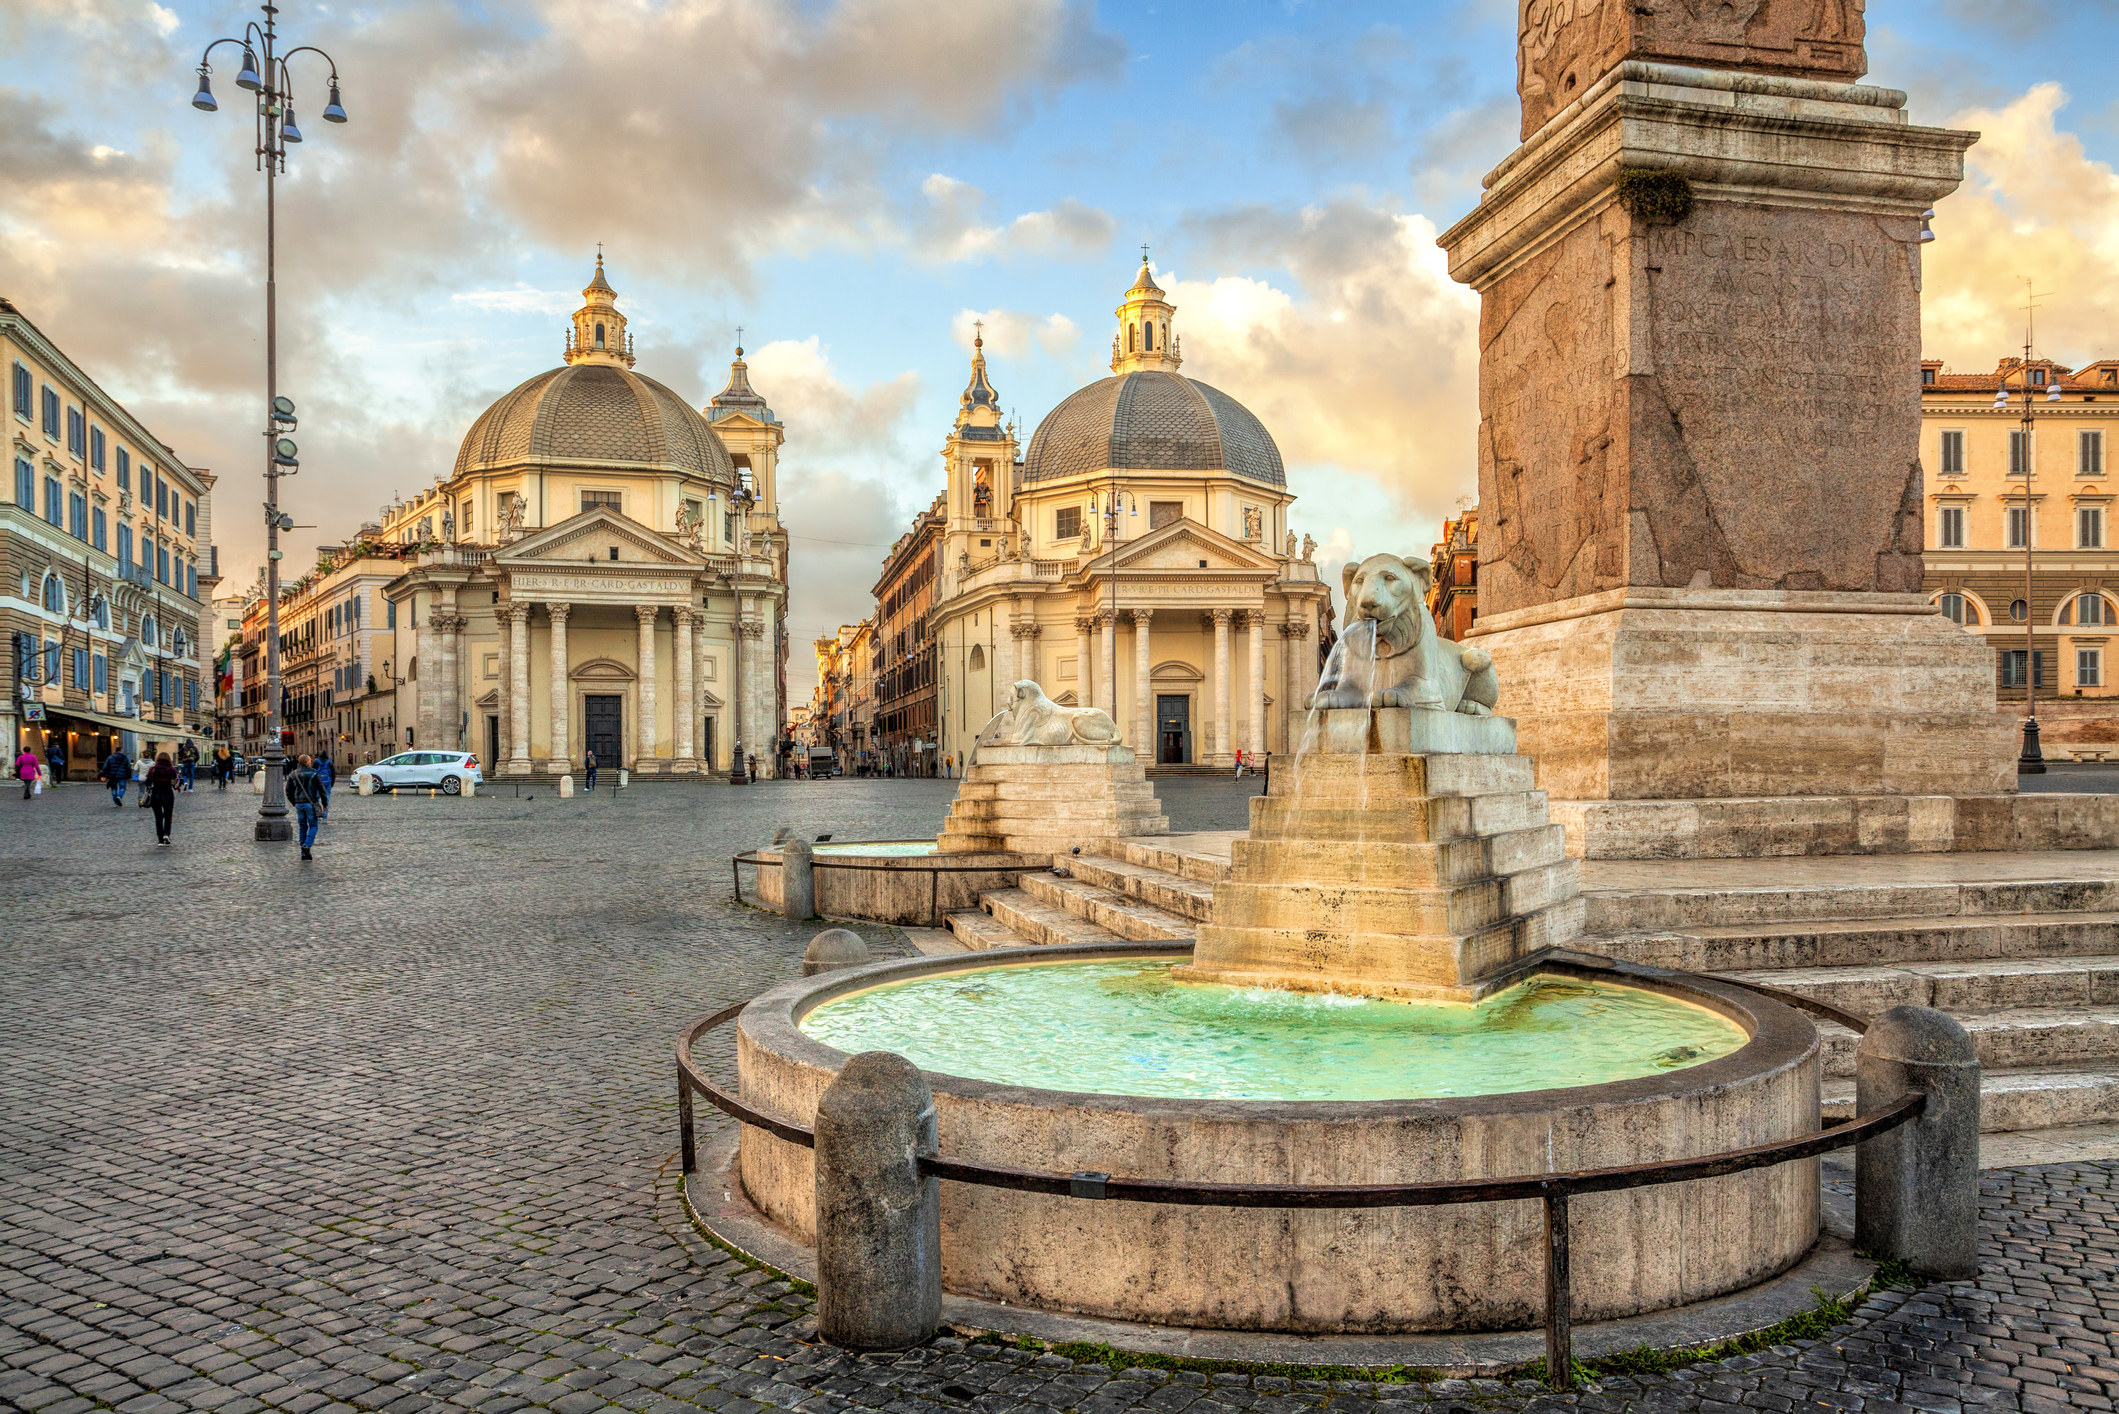 A Roman plazza with sculptures and fountains.